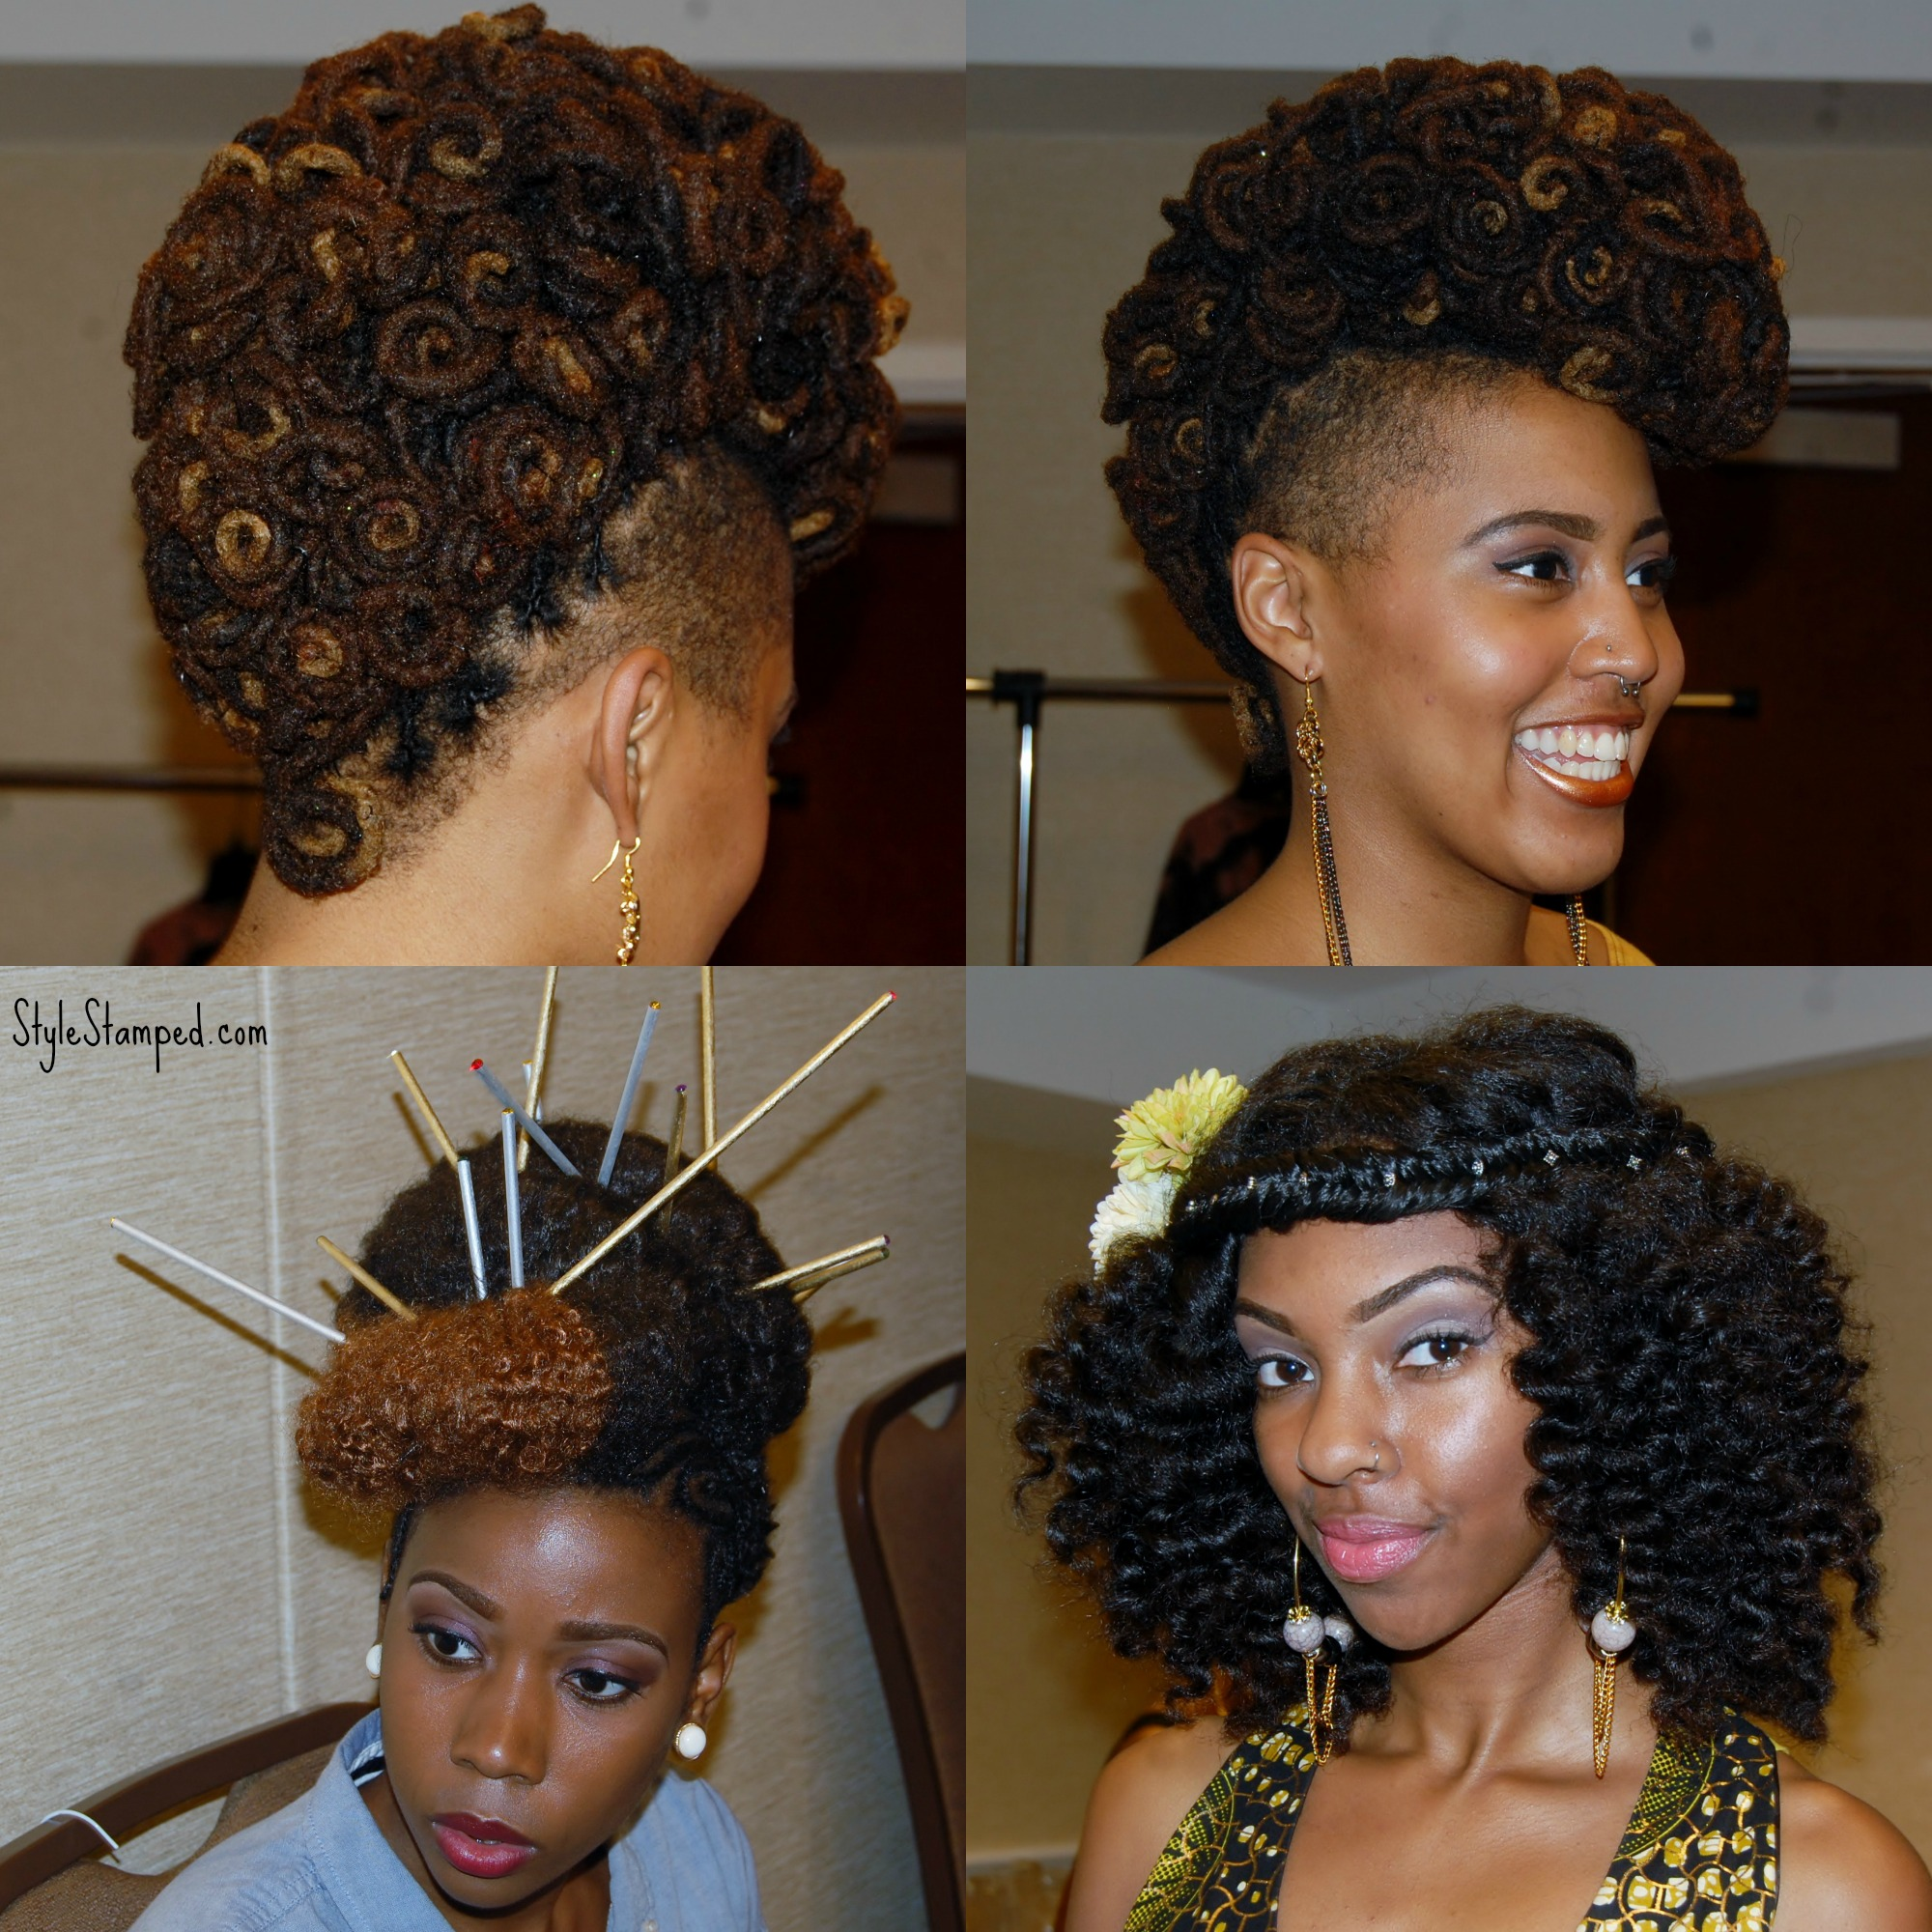 Natural-Hair-Fashion-Show-StyleStamped